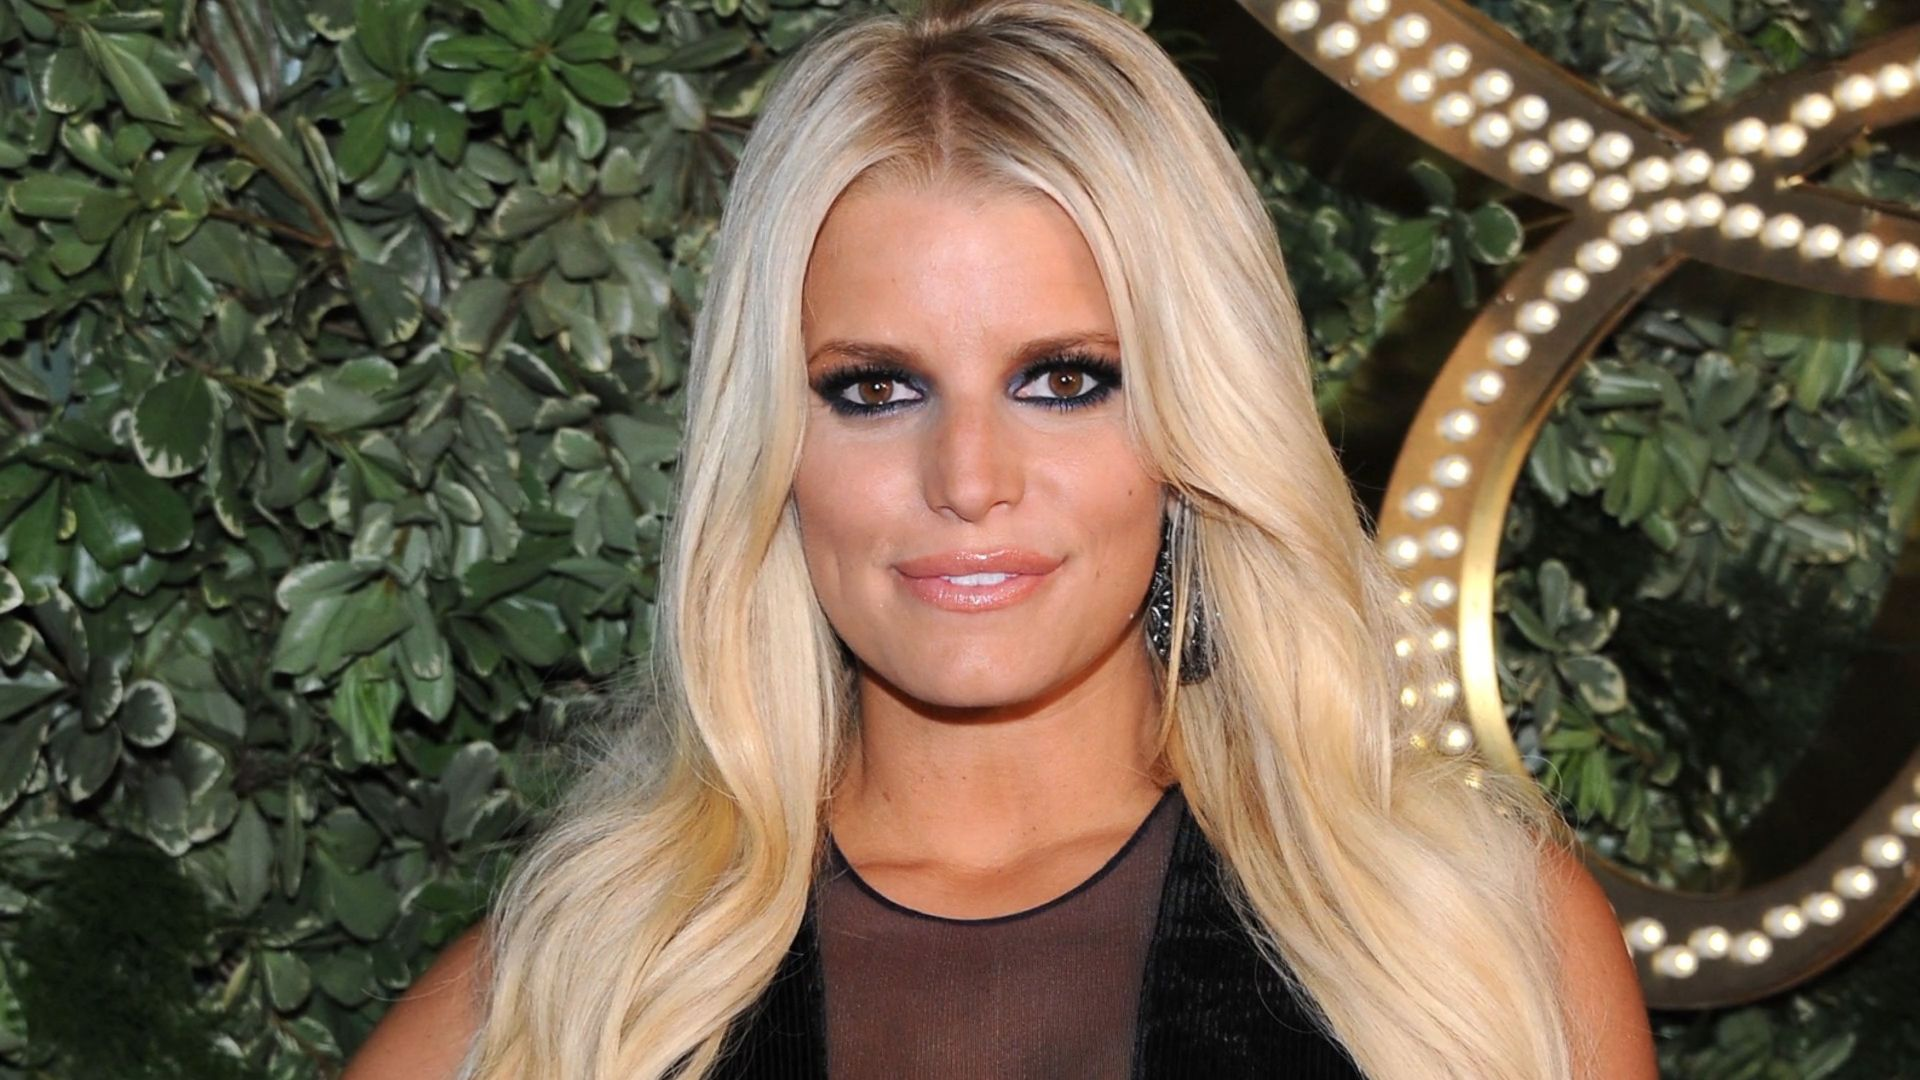 Jessica Simpson Reveals The Moment She Knew She Had To Quit Drinking In New Memoir Excerpt